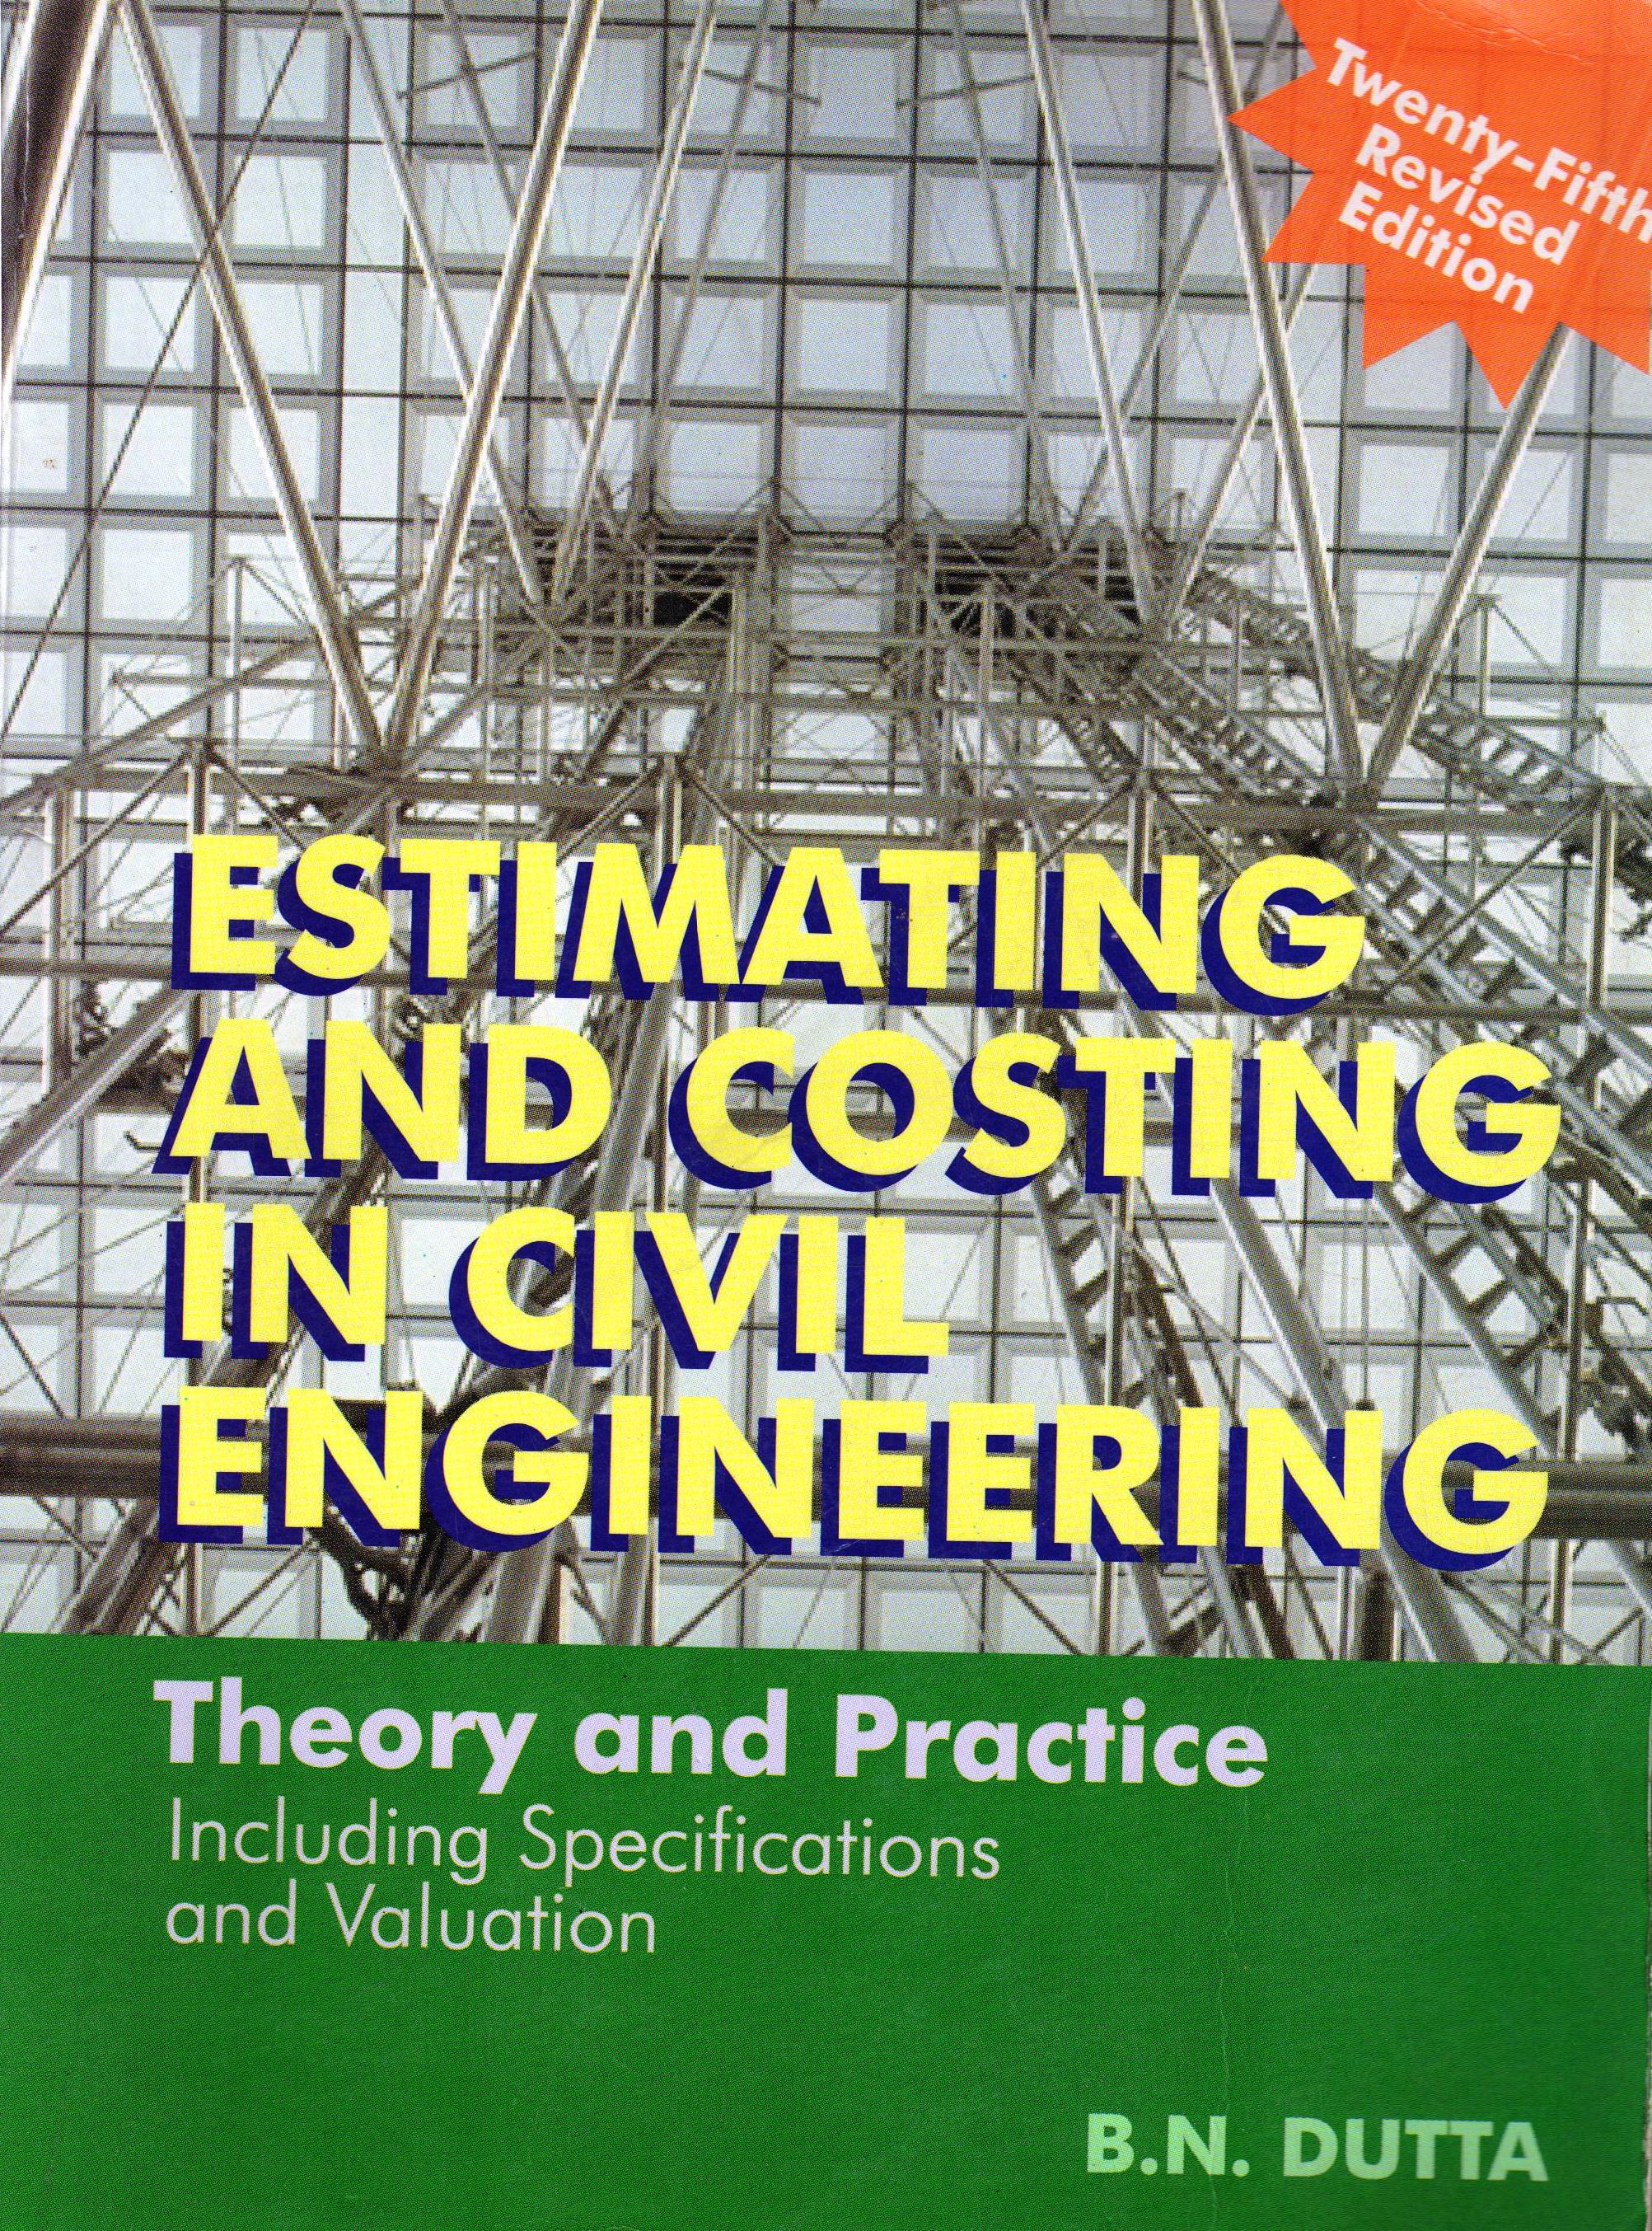 Pdf costing estimating and book